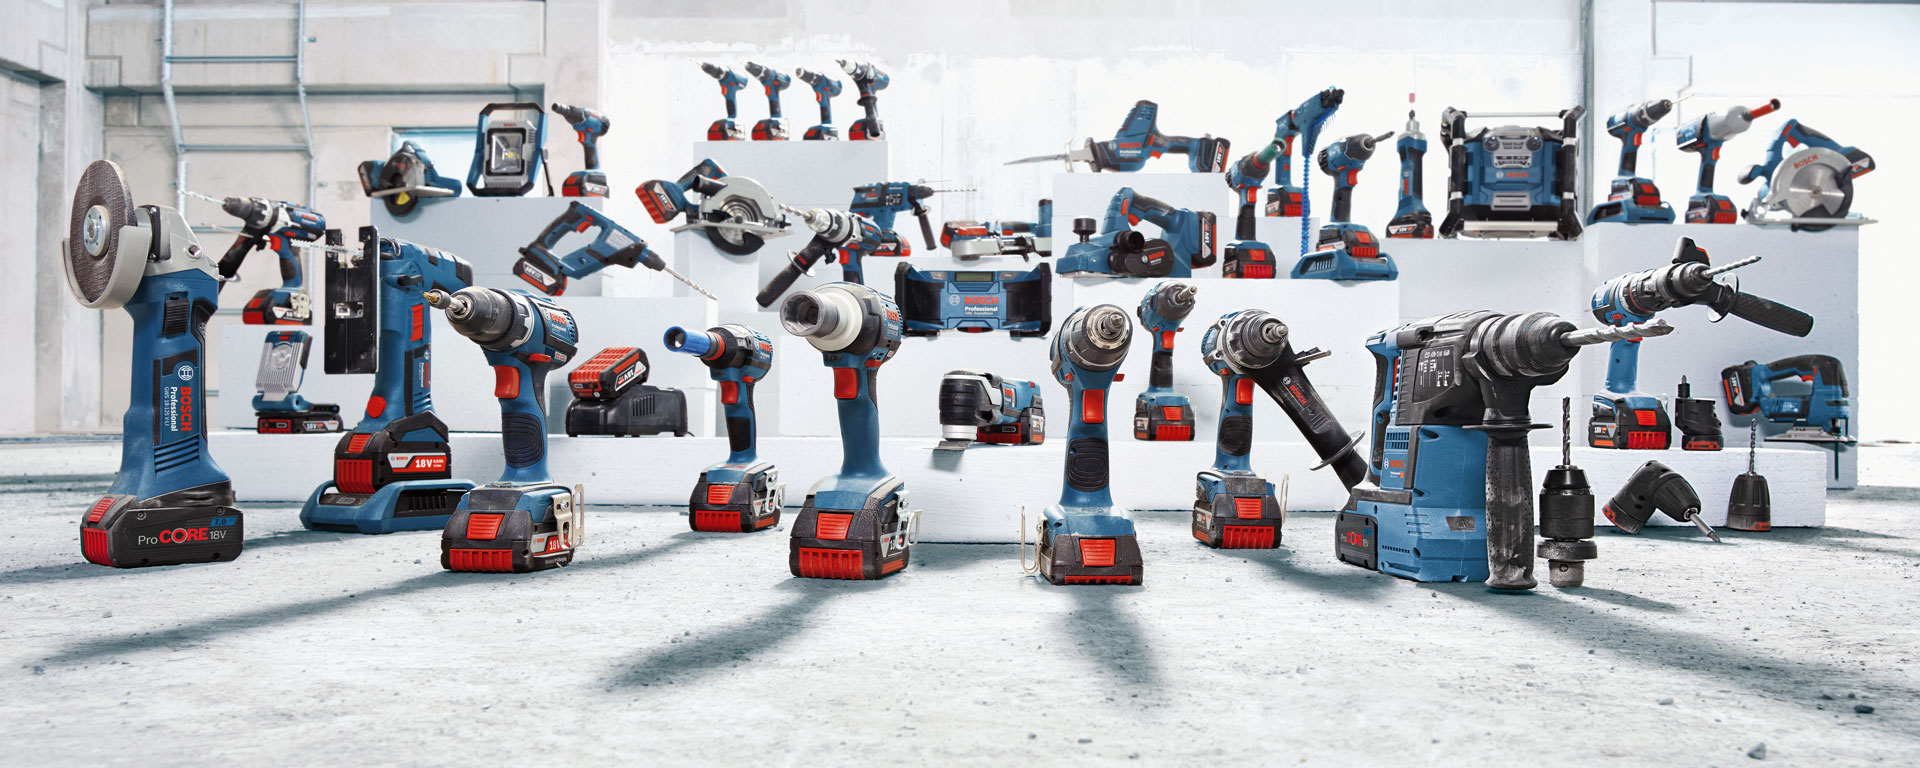 Bosch cordless technology